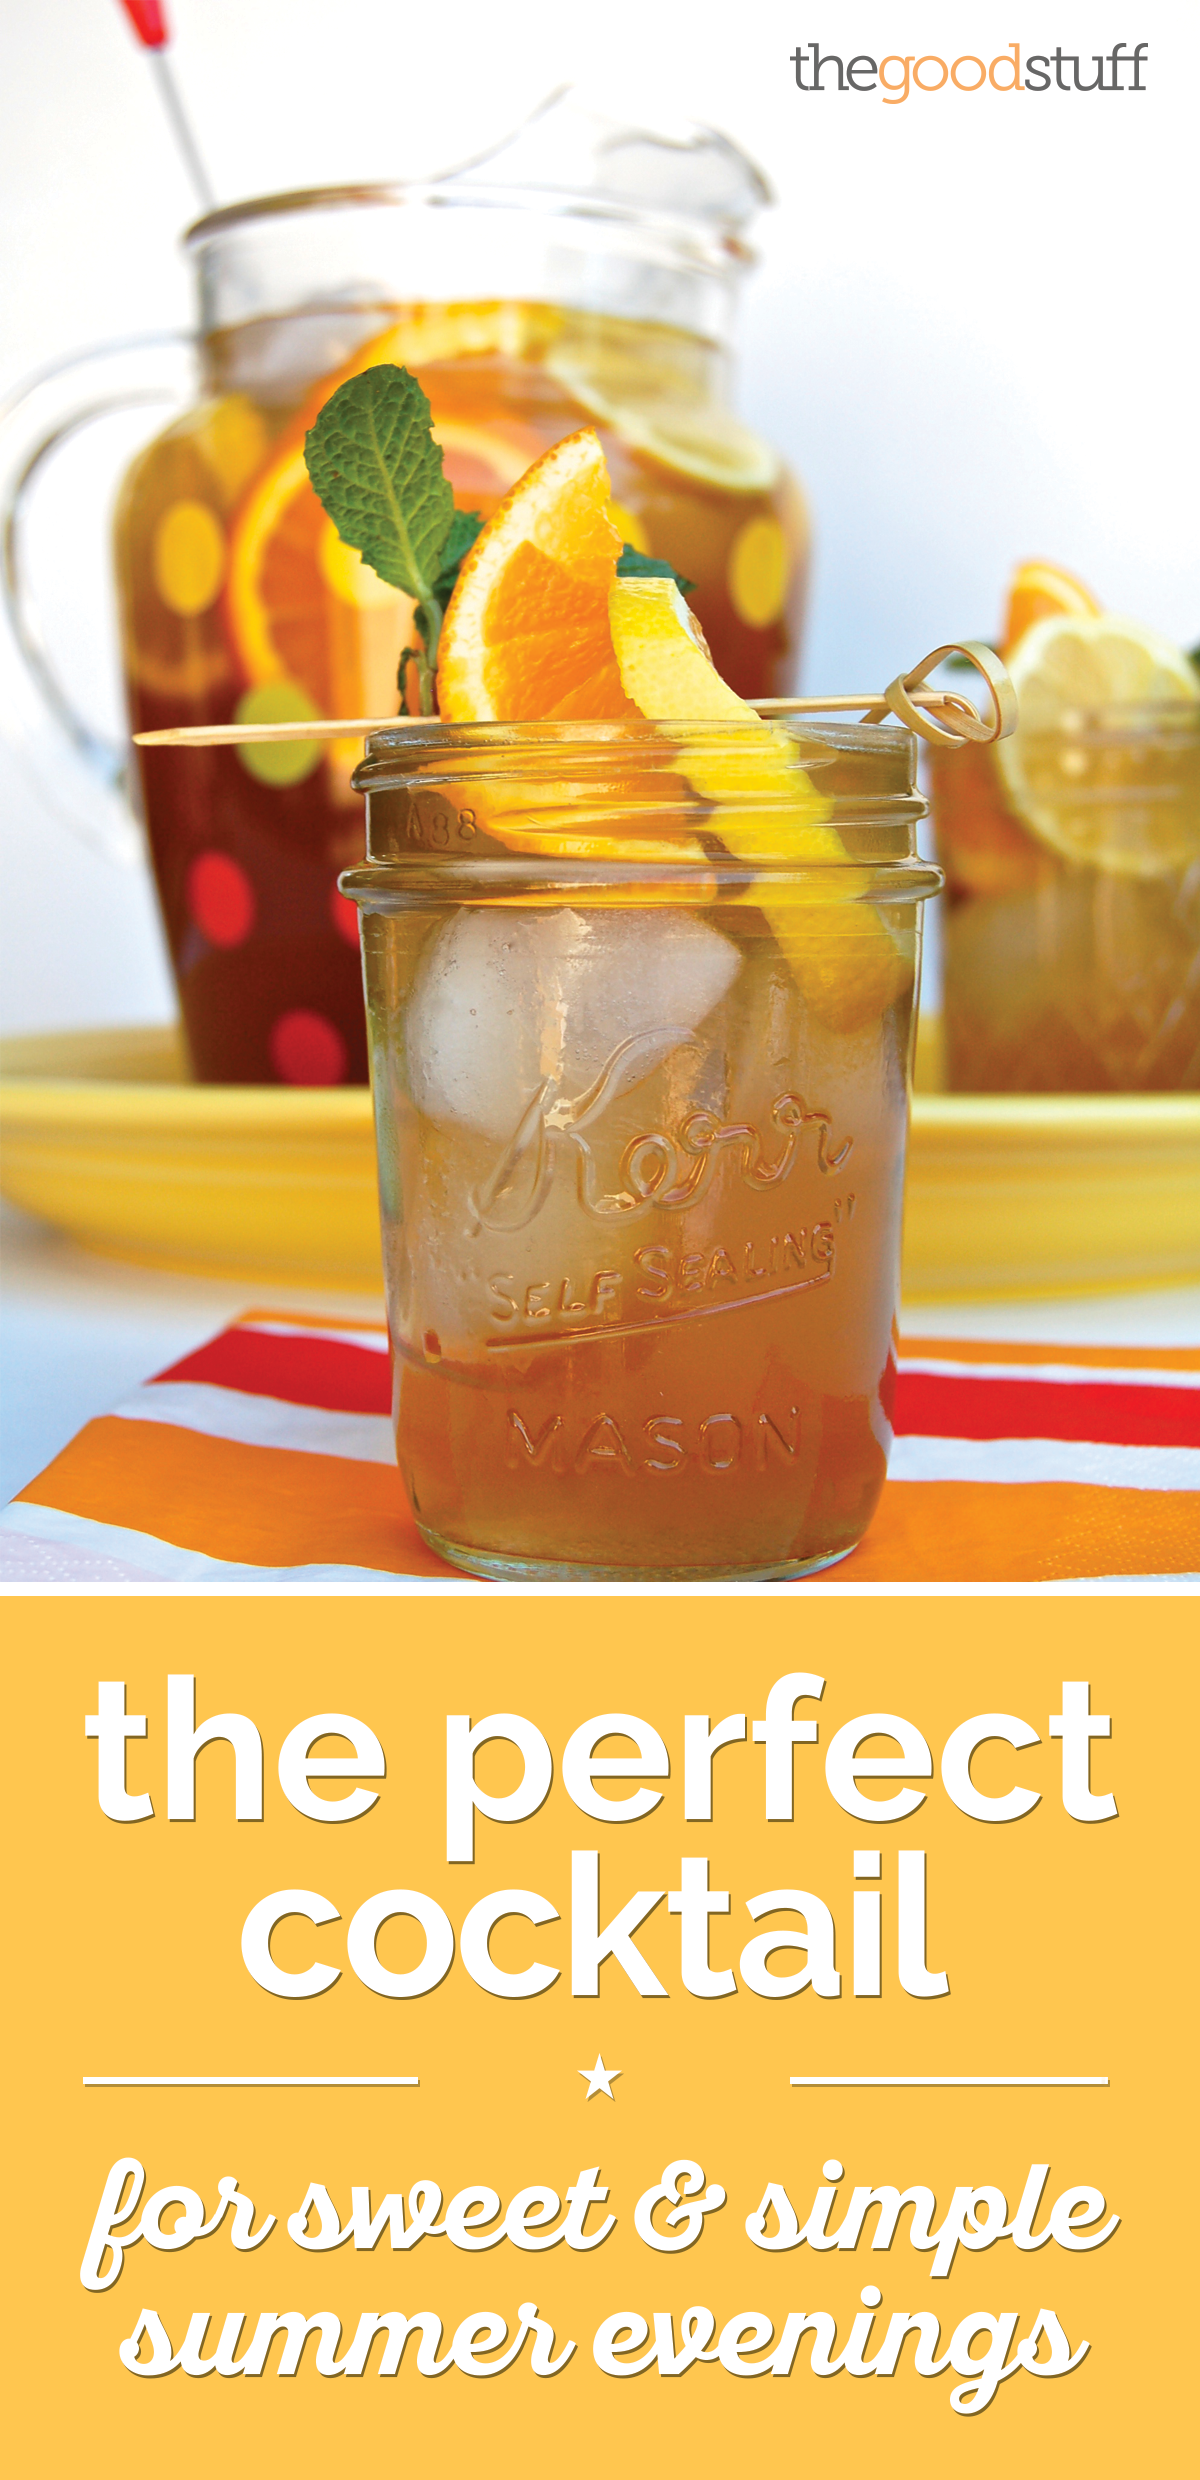 The Perfect Cocktail for Sweet & Simple Summer Evenings | thegoodstuff